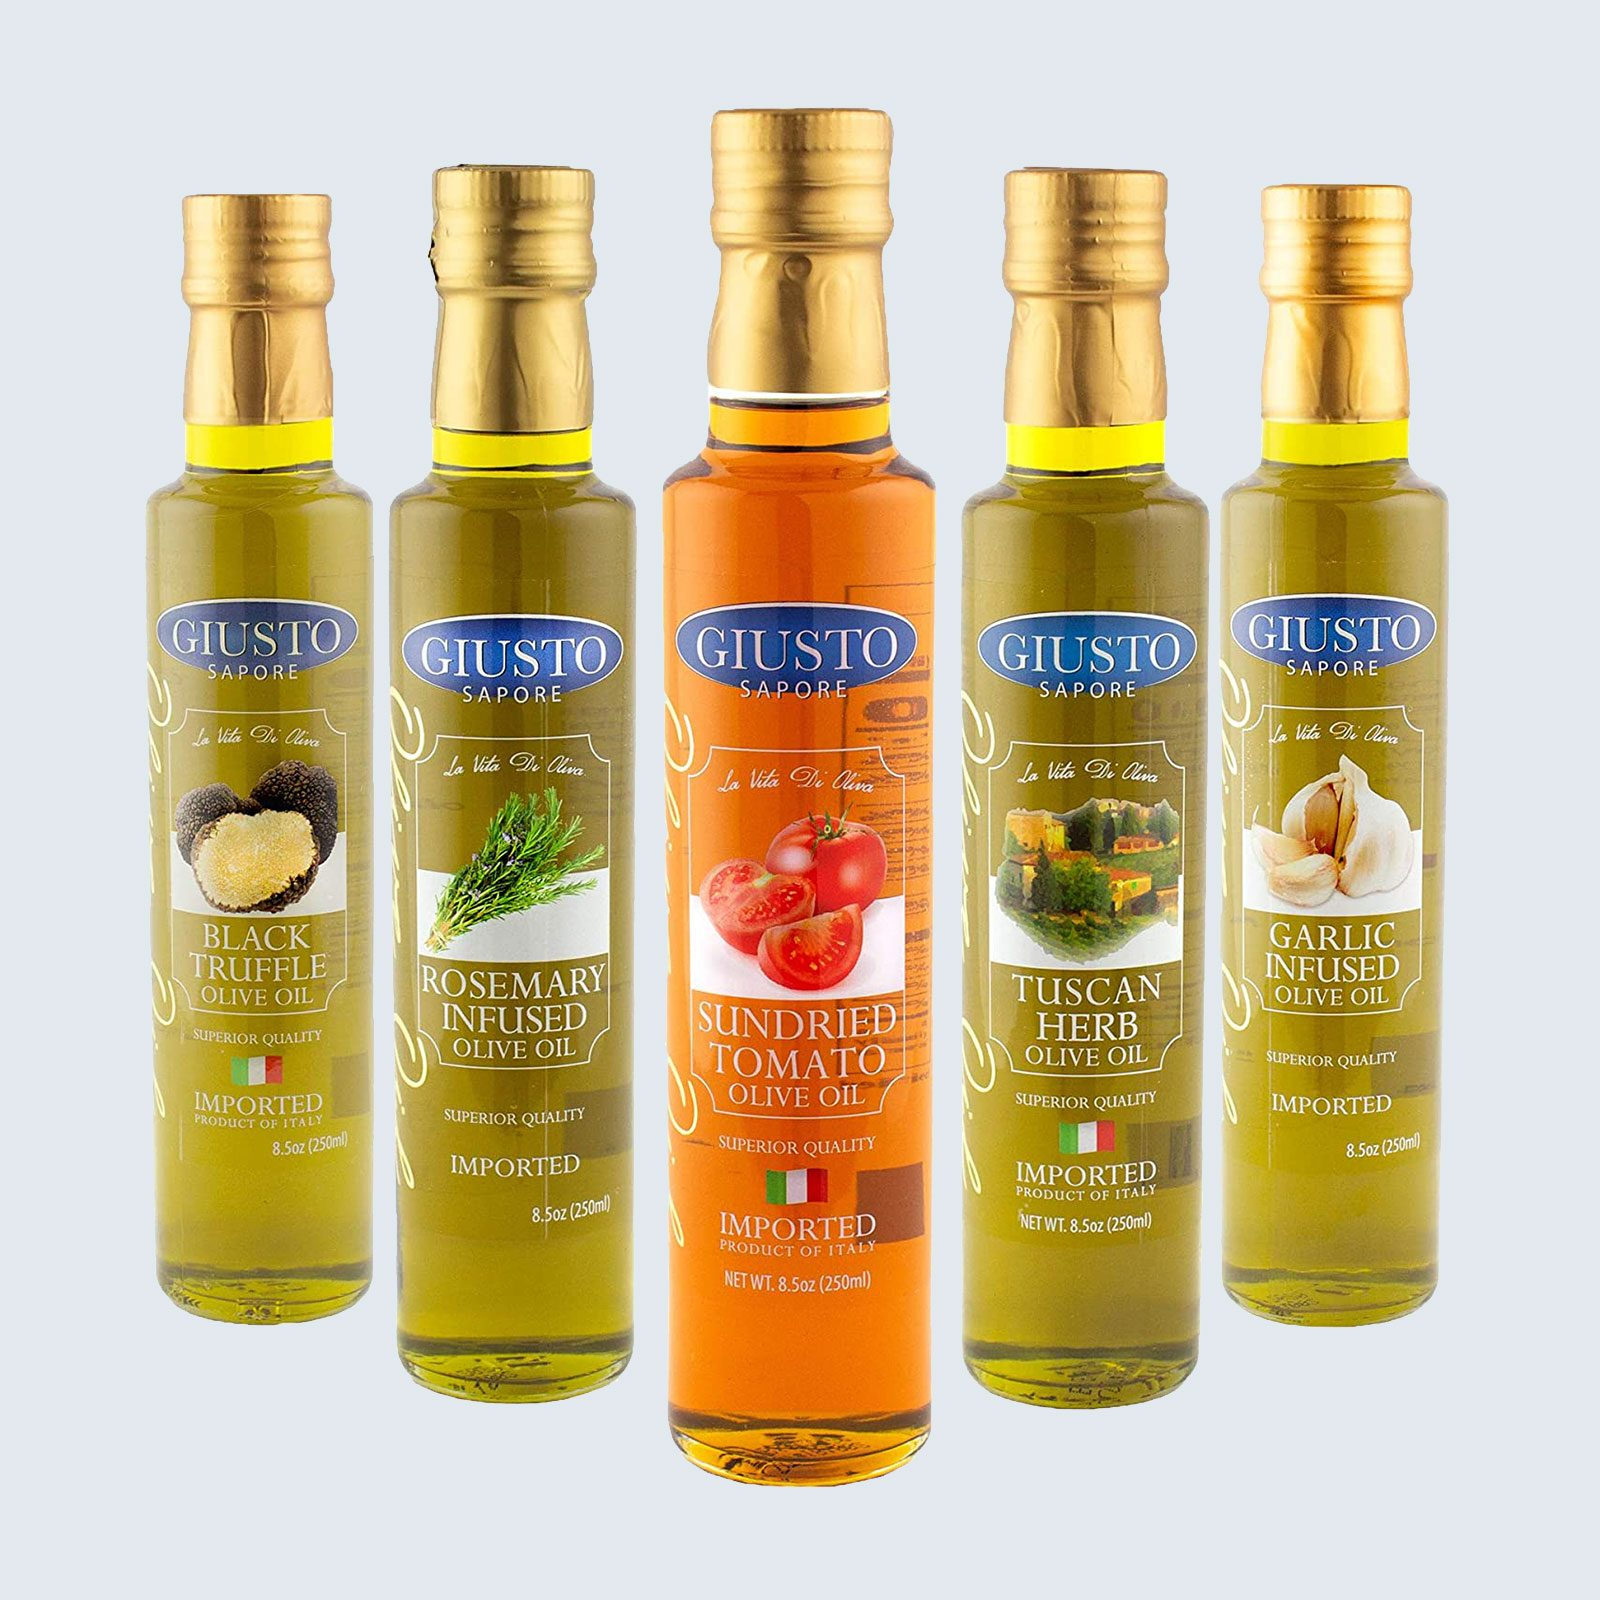 For the home chef: Giusto Sapore Infused Olive Oil Set